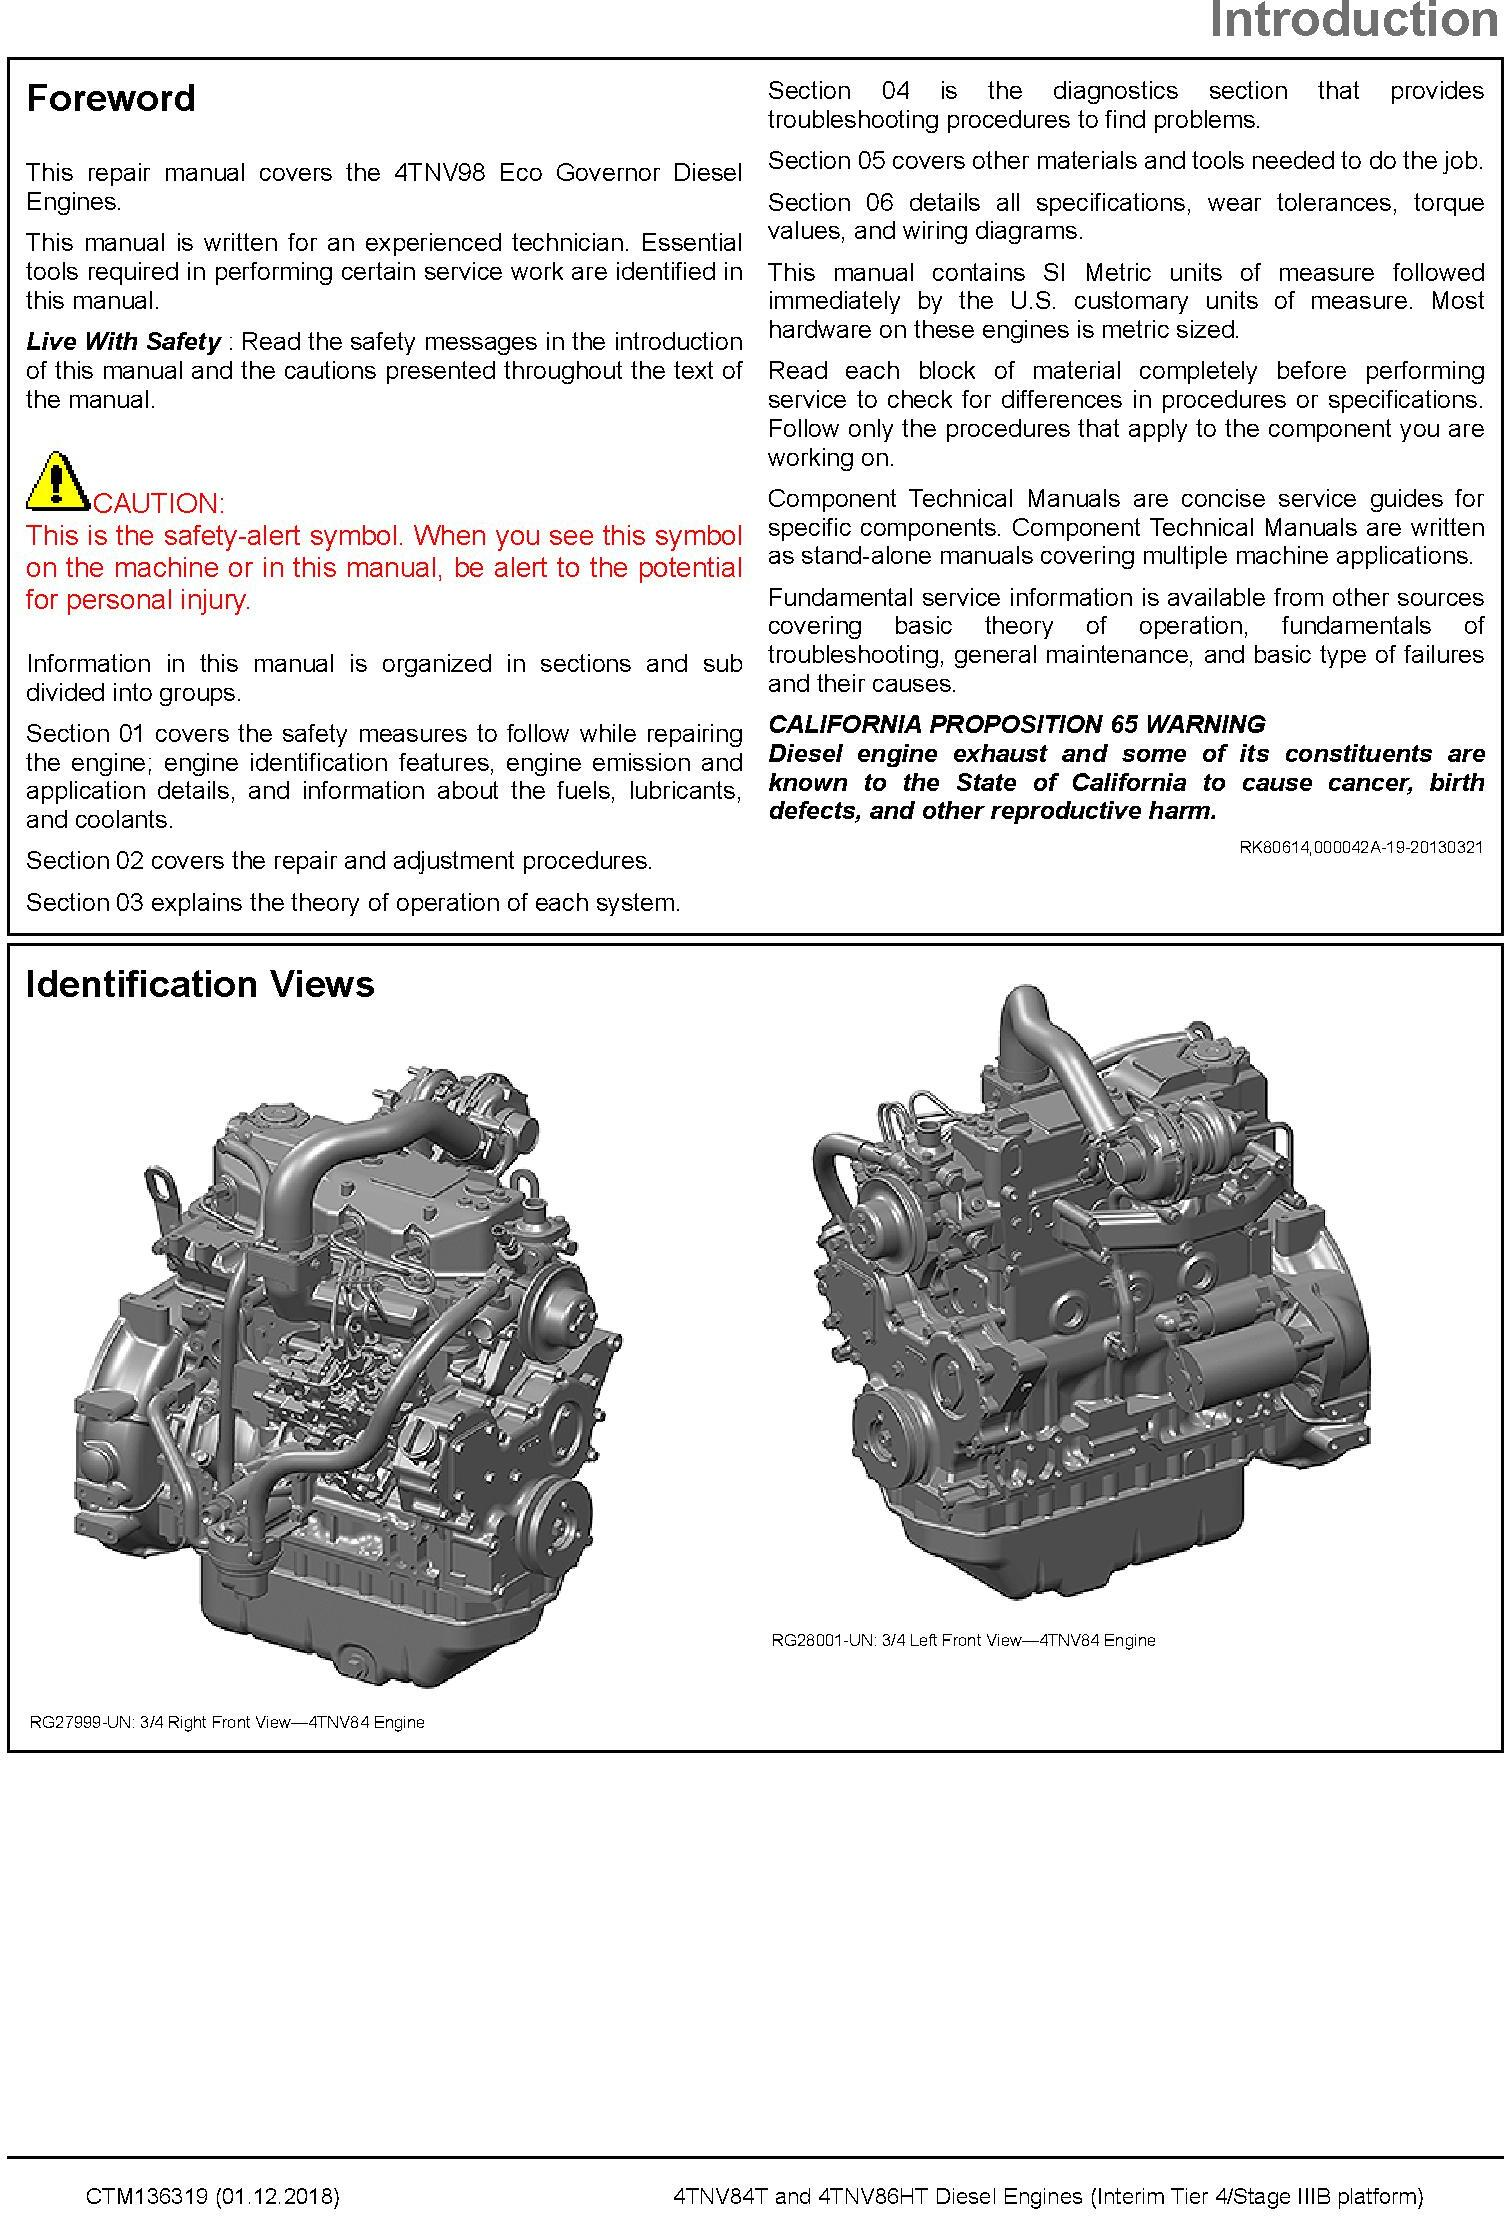 Yanmar 4TNV84T and 4TNV86HT Diesel Engines (IT4/Stage IIIB) Technical Service Manual (CTM136319) - 3